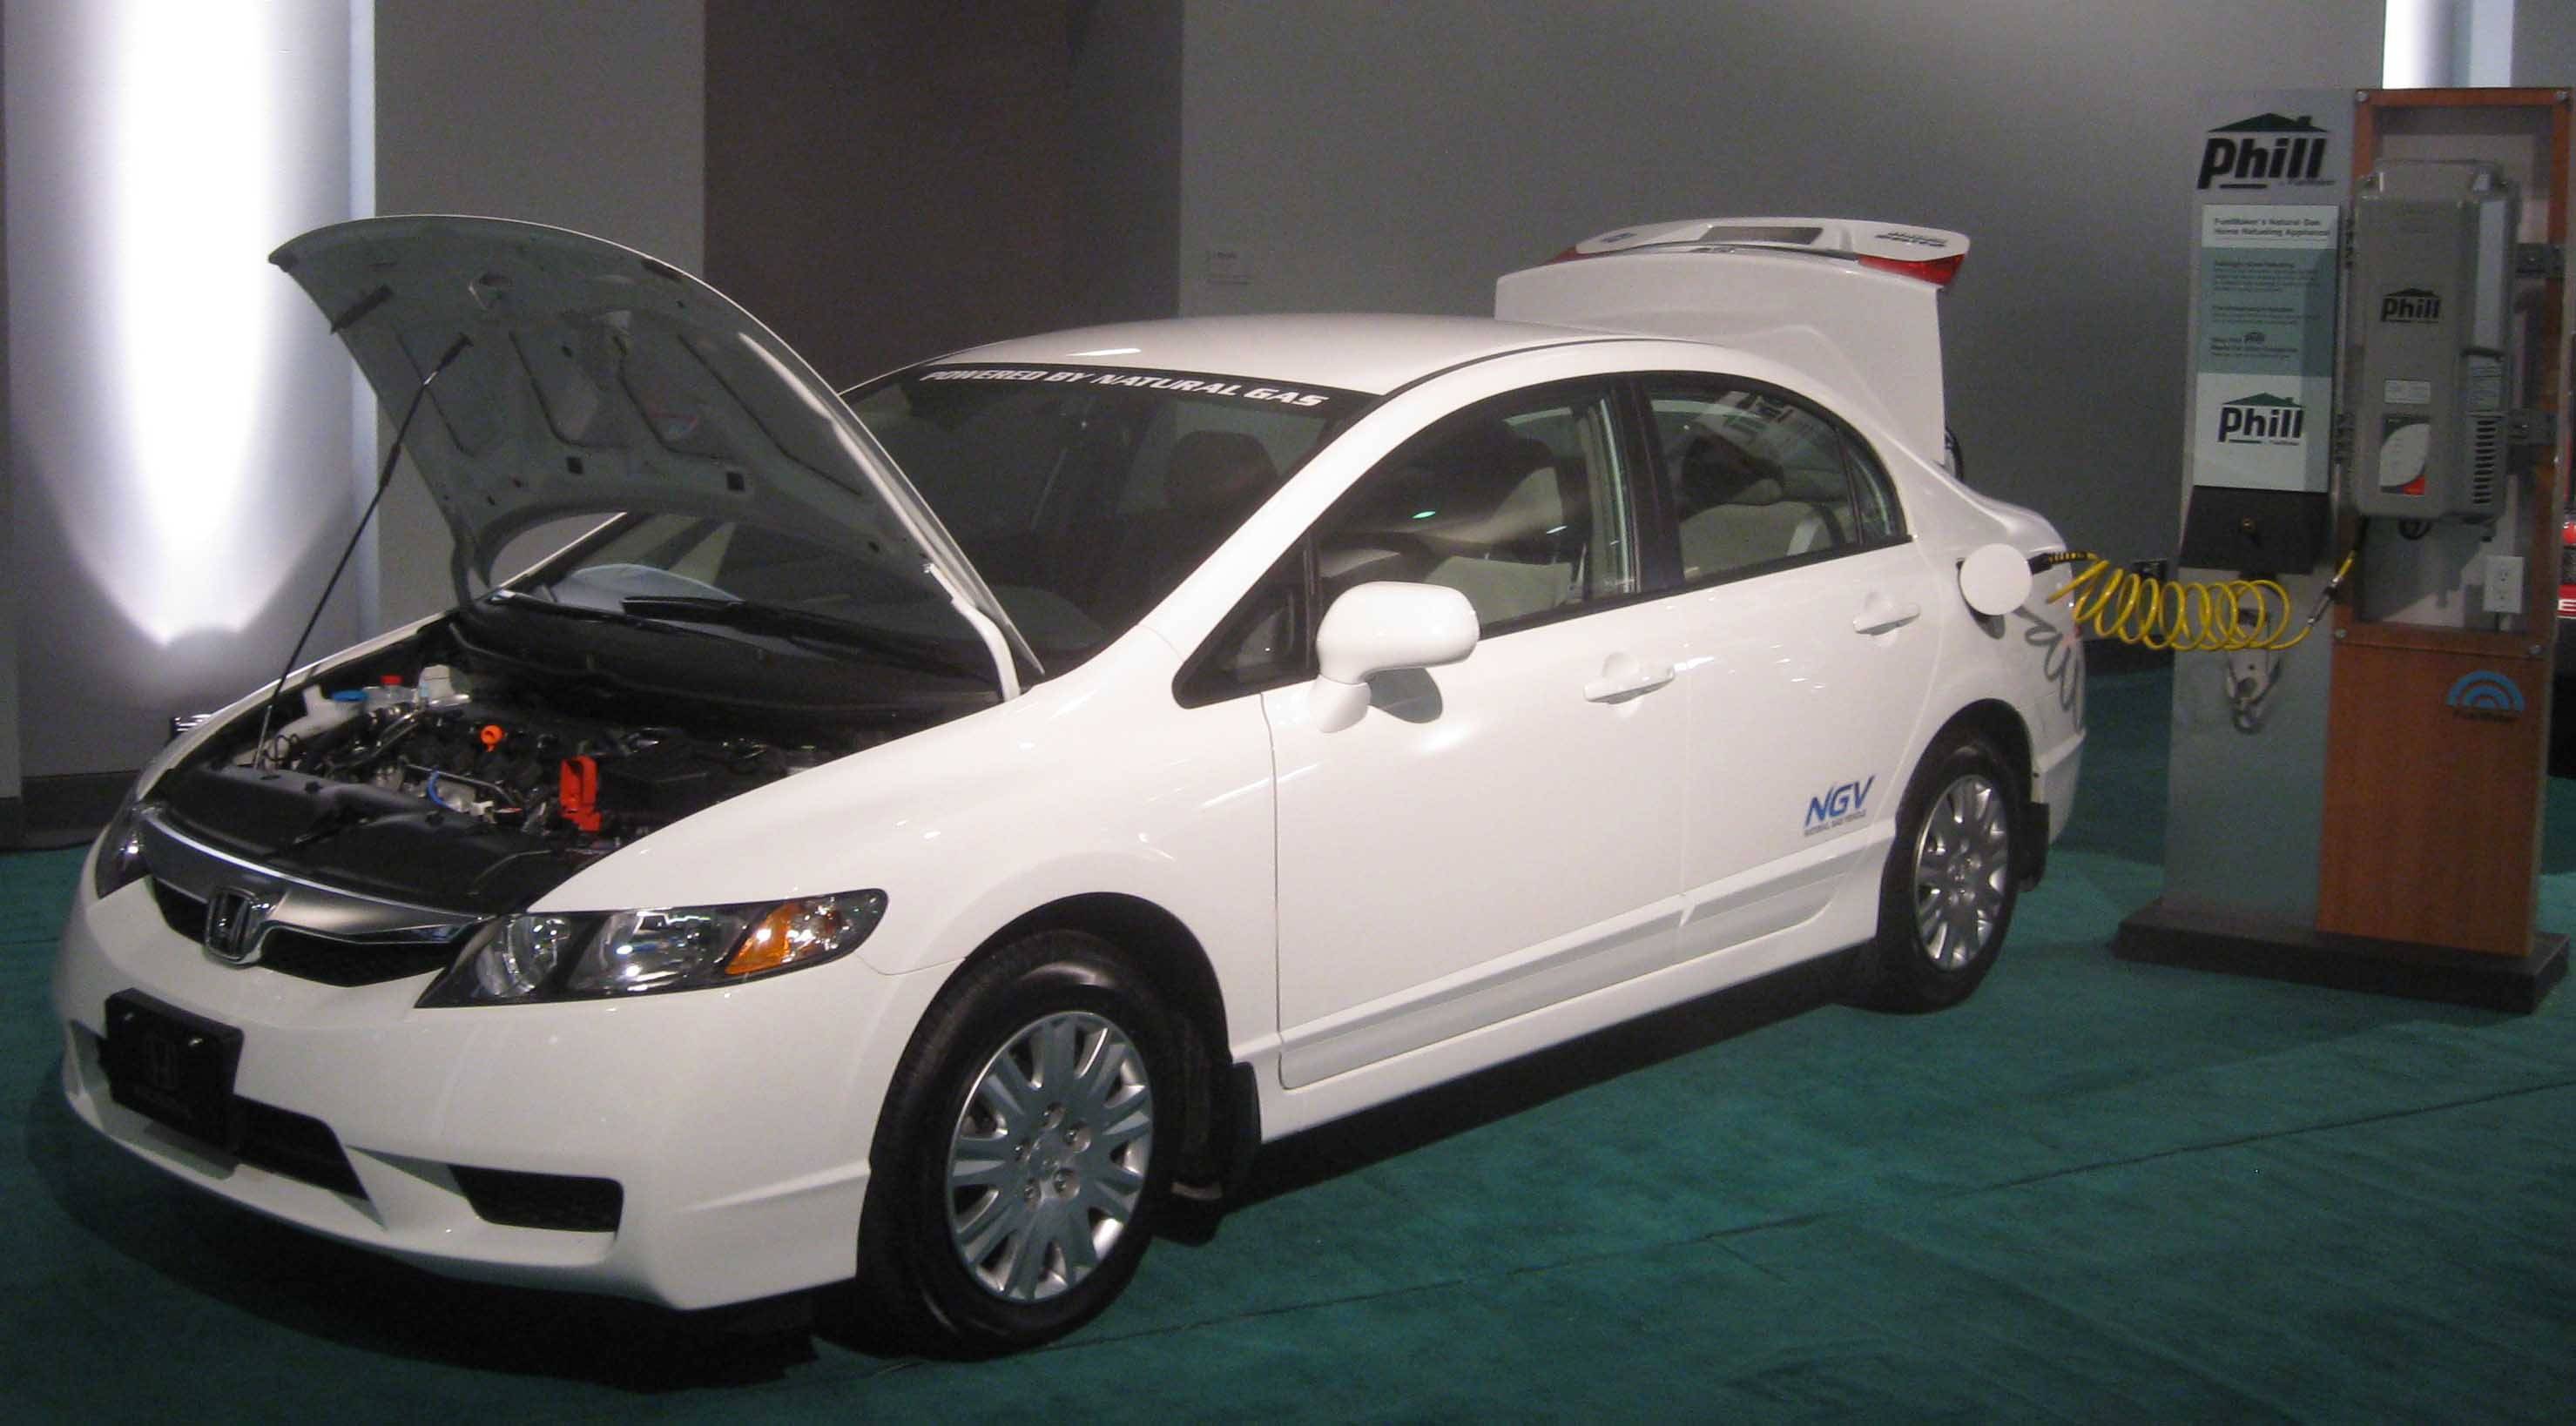 Honda Civic Gx Wikipedia Cbr F4 1999 Wiring Diagram